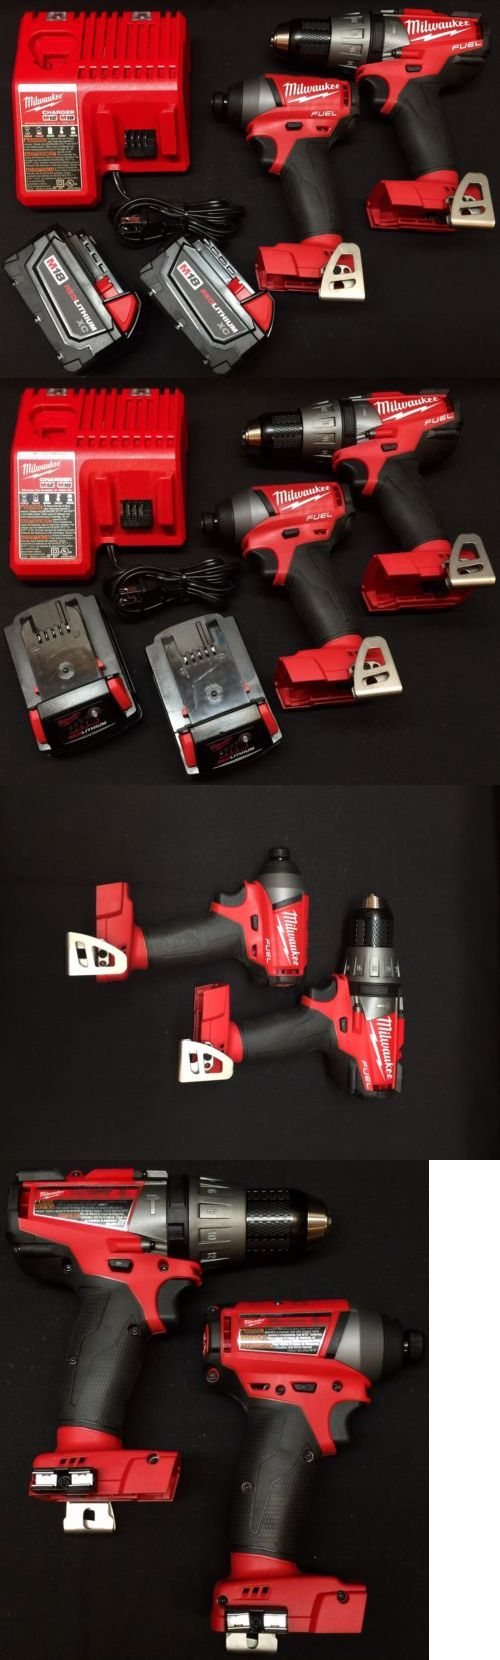 Combination Sets 177000: Milwaukee 2704-20 M18 Fuel Cordless Li-Ion 2-Tool Combo Drill Impact Bundle -> BUY IT NOW ONLY: $249.99 on eBay!